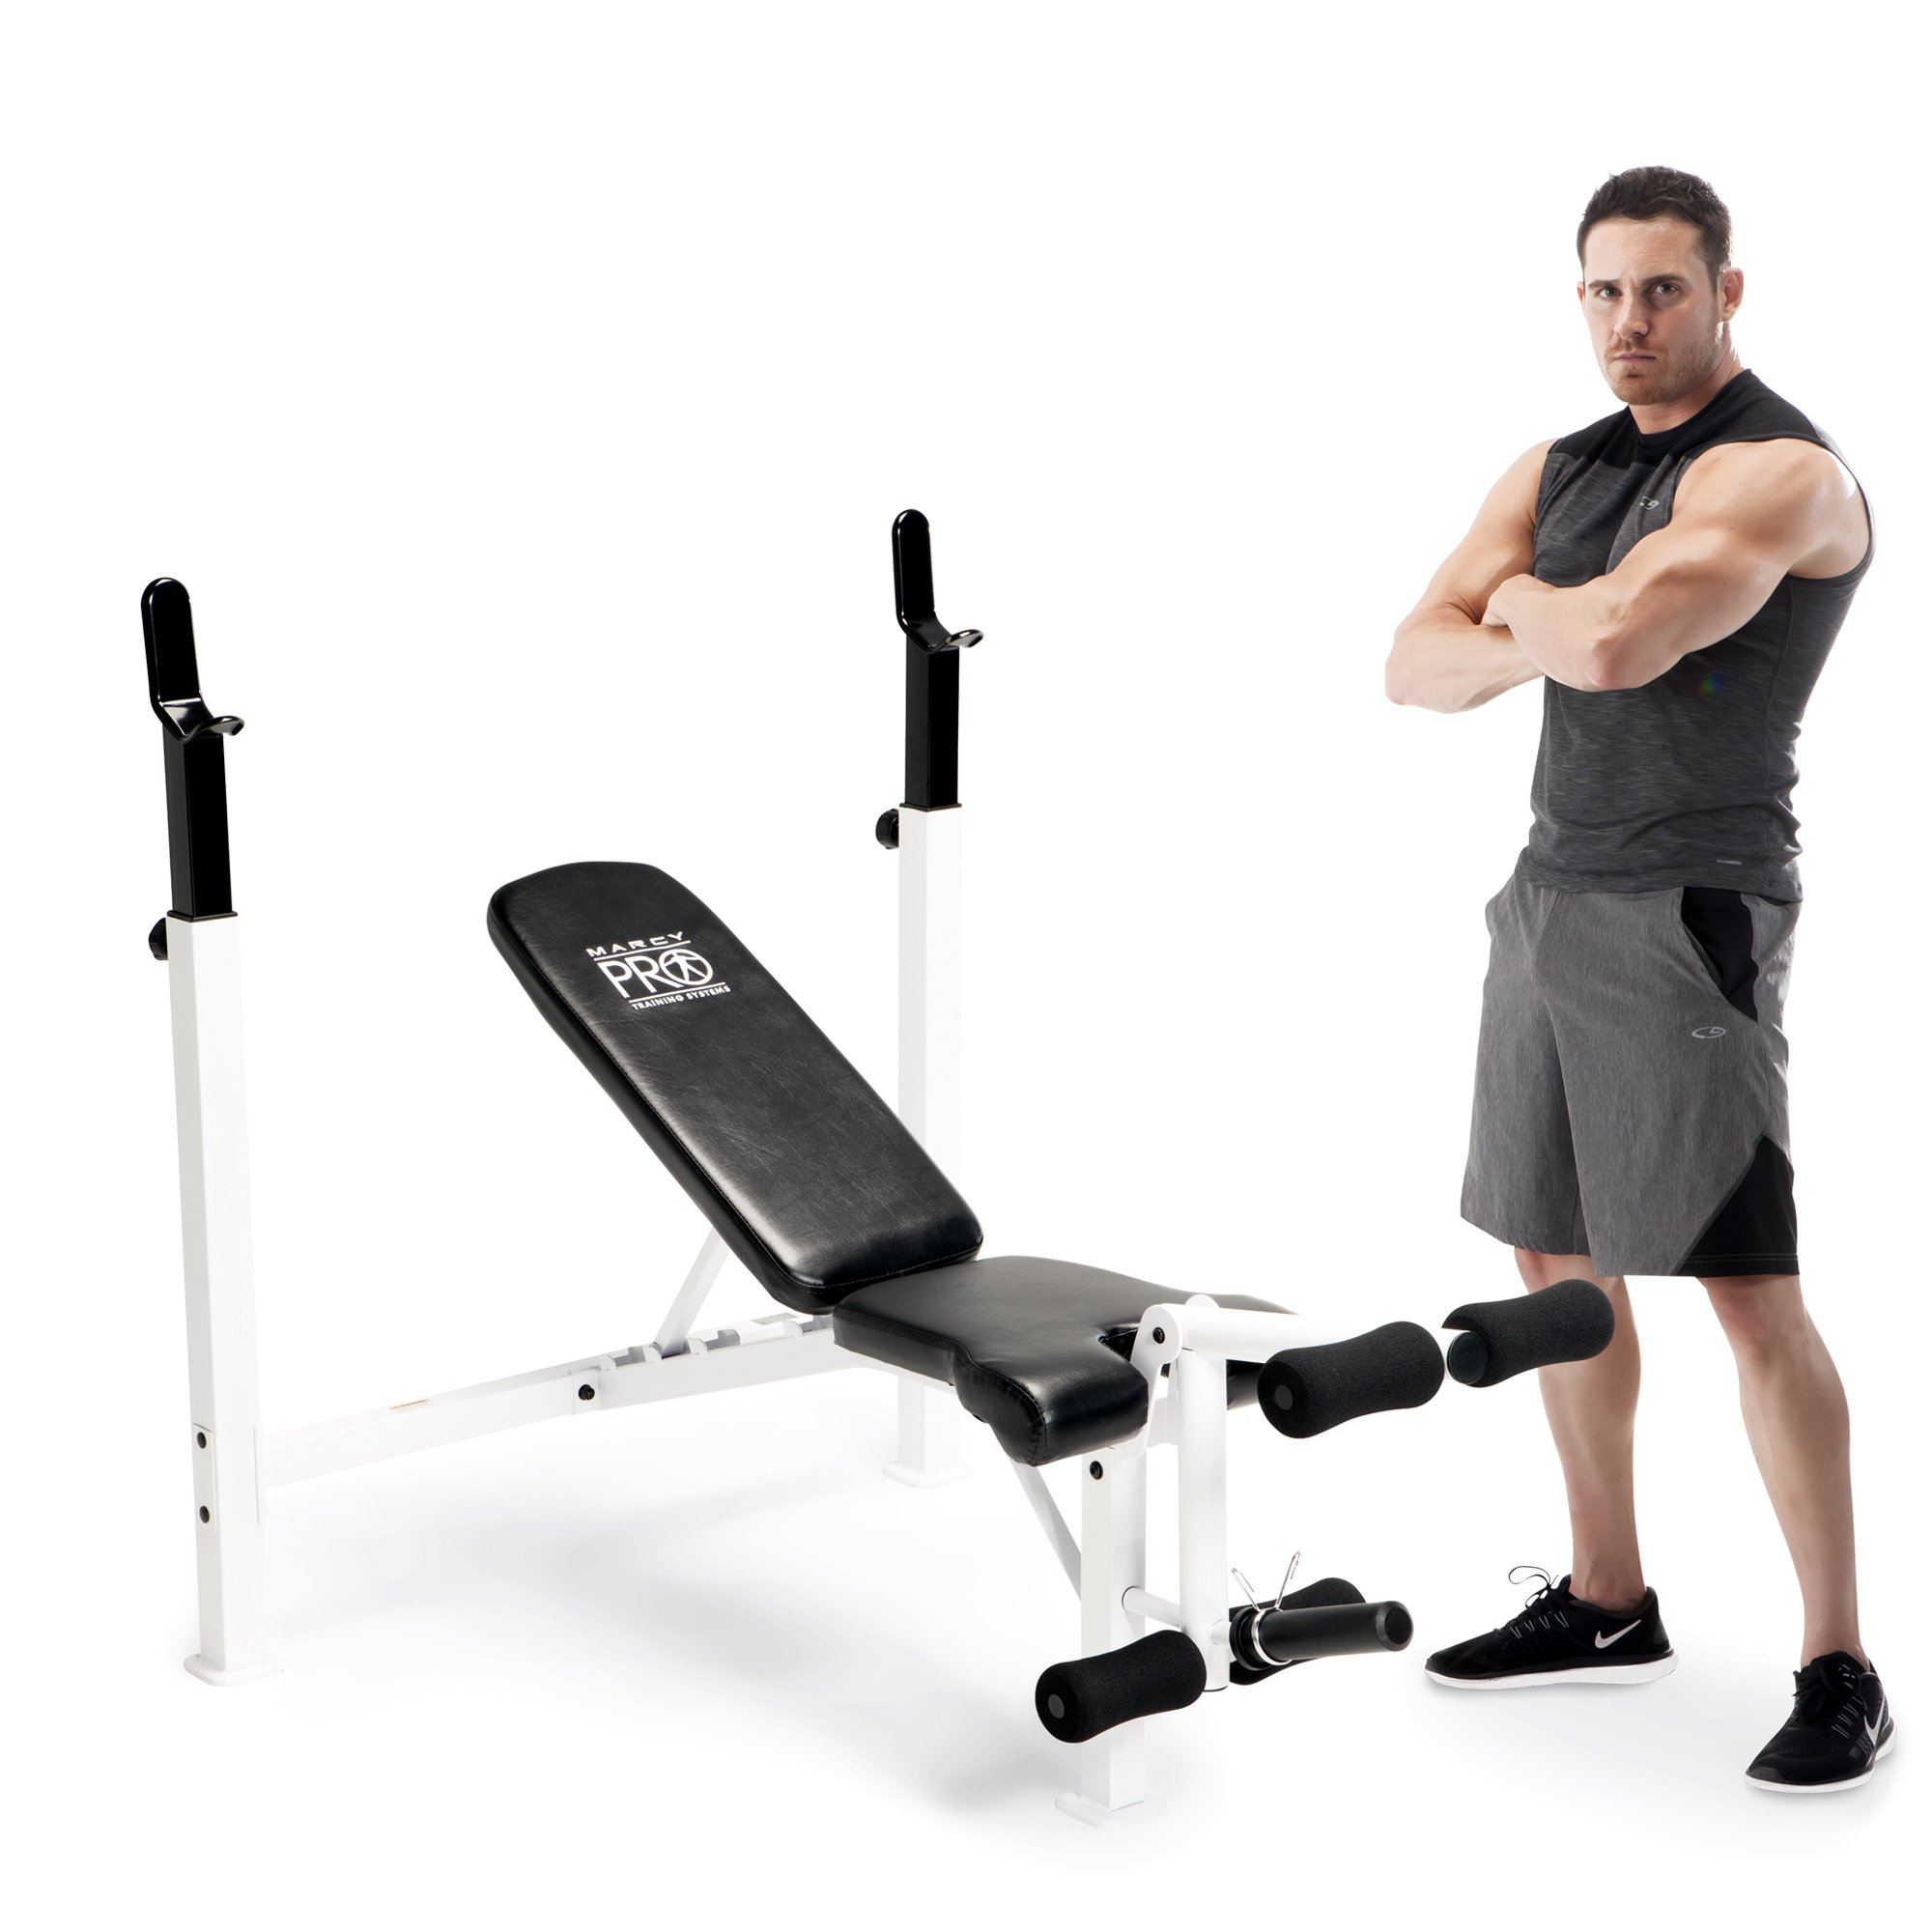 Marcy Fitness Adjustable Olympic Home Gym Weight Lifting Workout Bench w/Rack by Marcy Fitness